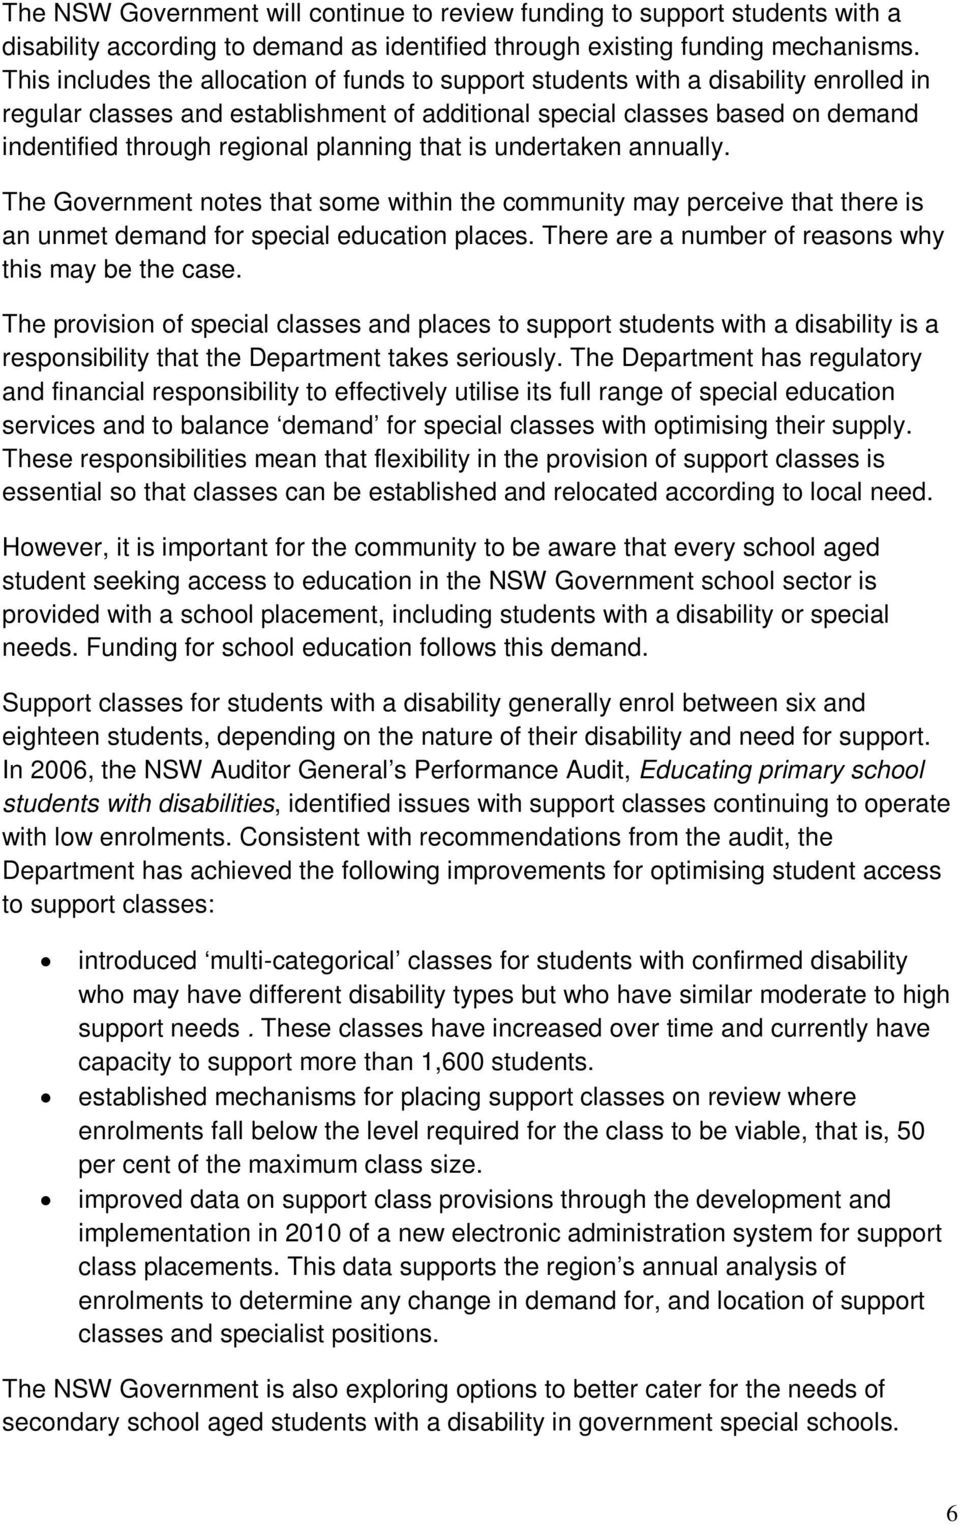 planning that is undertaken annually. The Government notes that some within the community may perceive that there is an unmet demand for special education places.